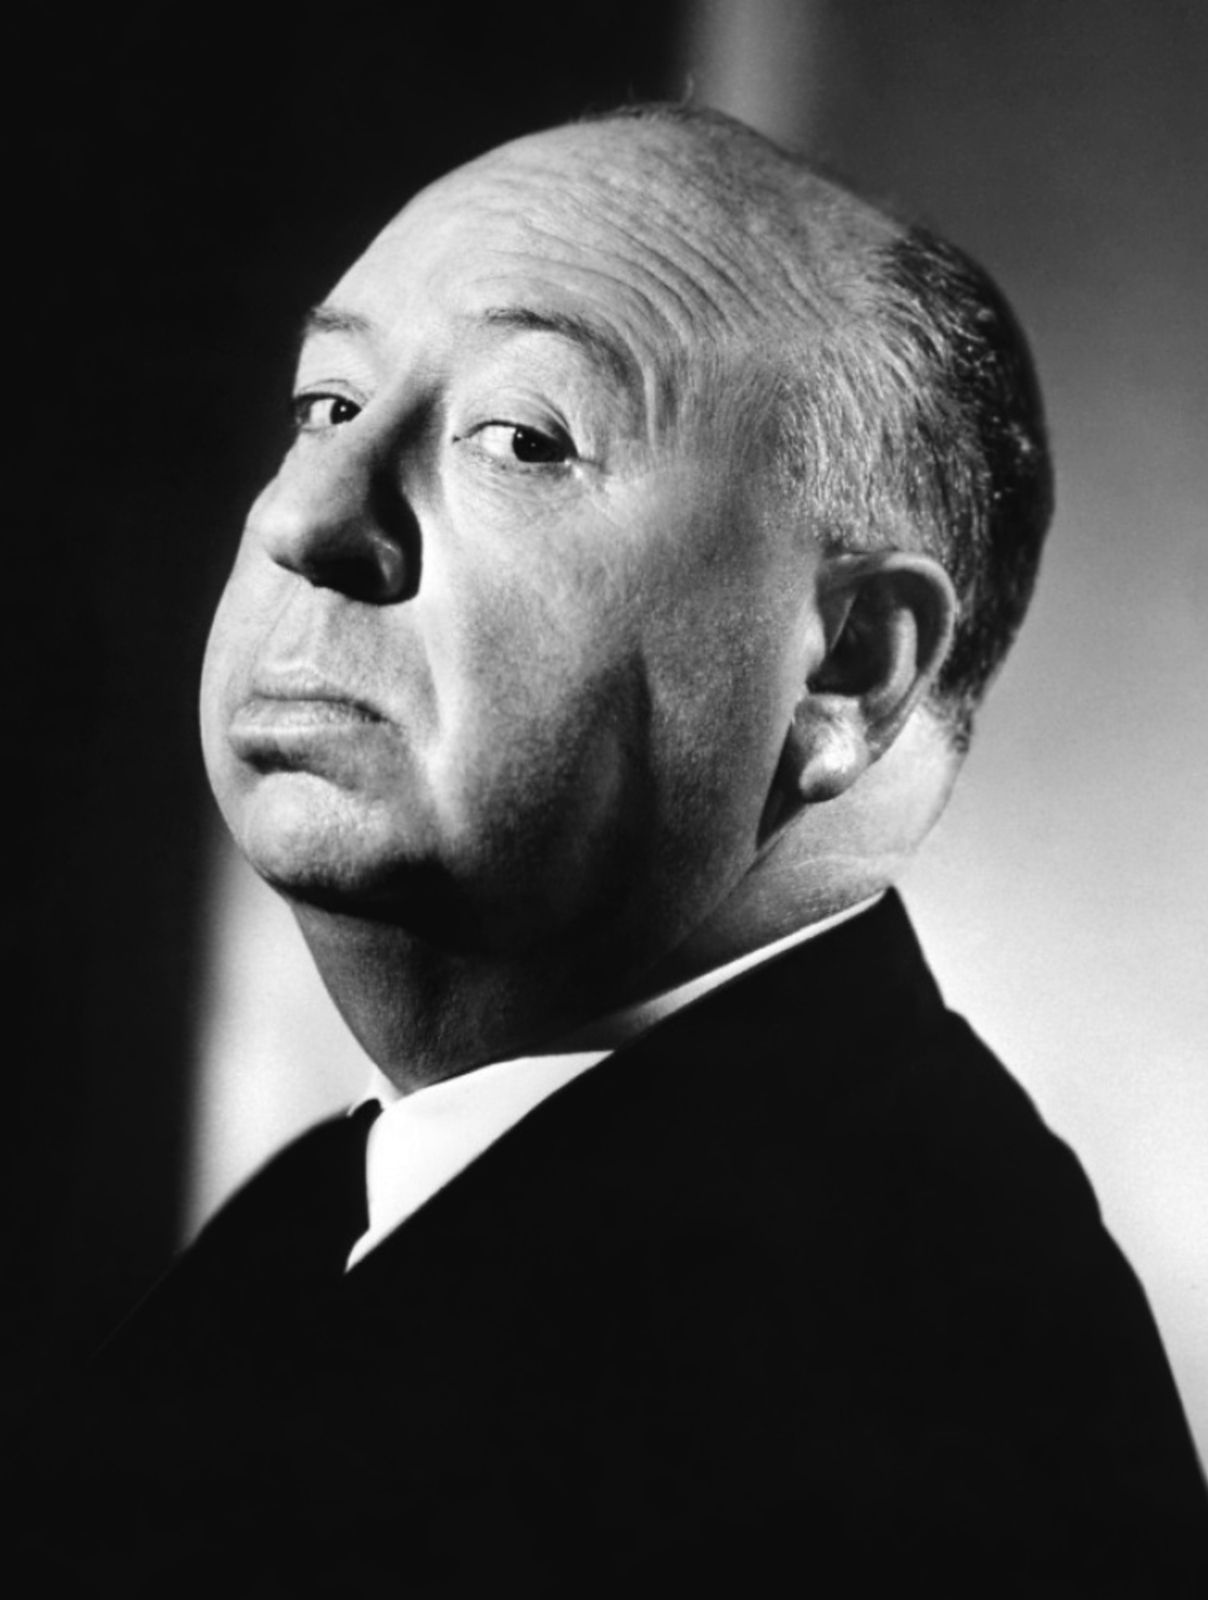 alfred_hitchcock_1.jpg